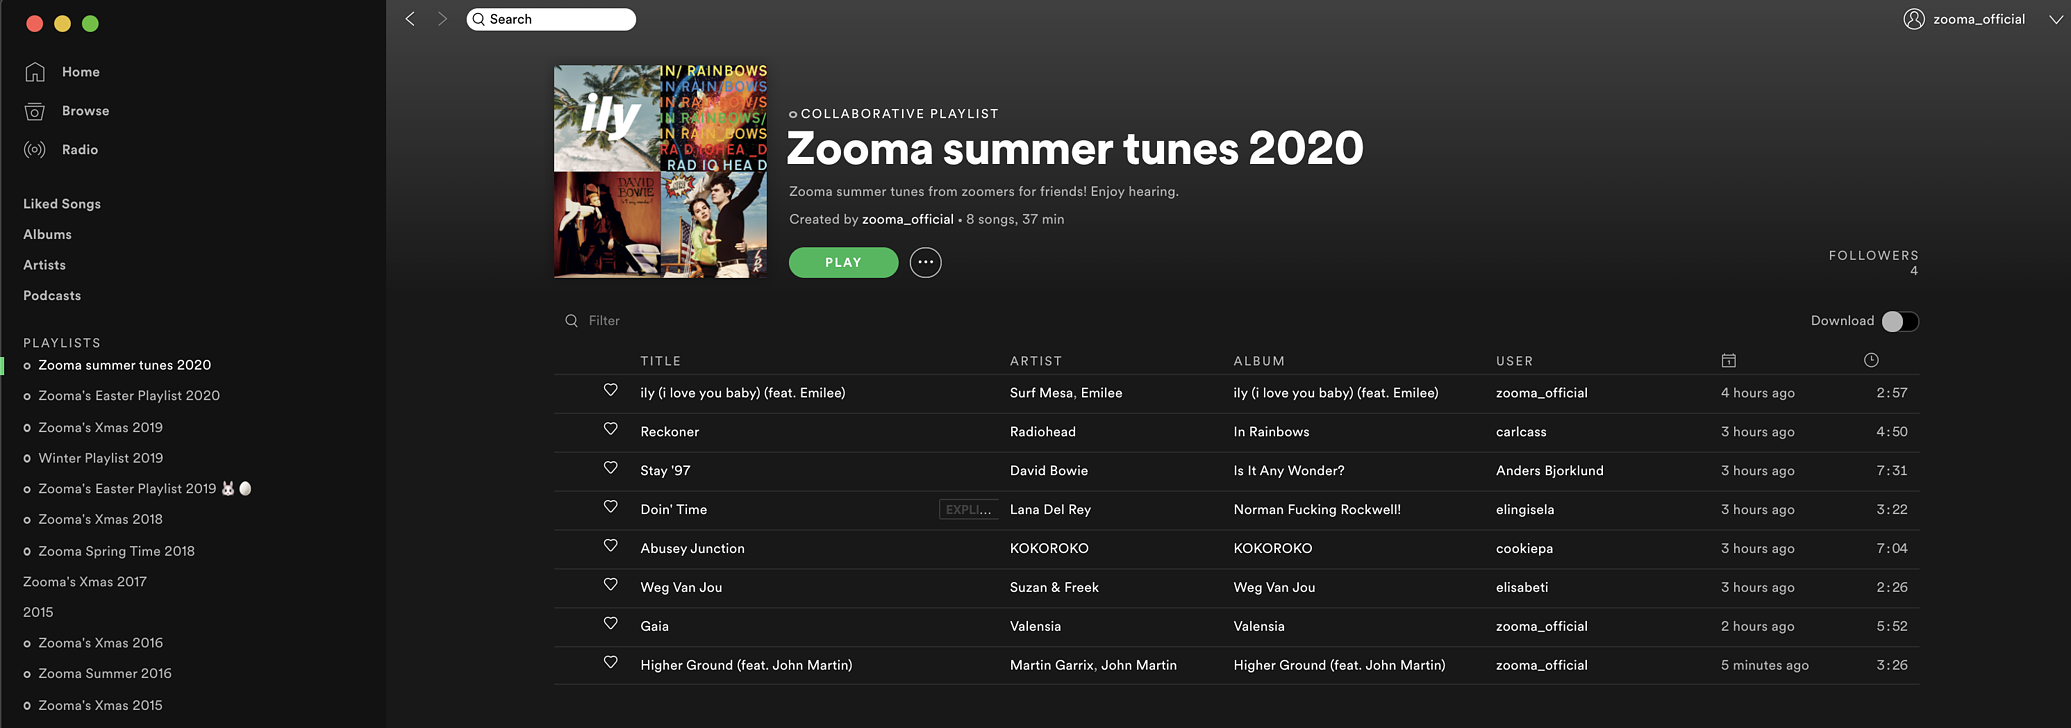 Zooma summer tunes 2020